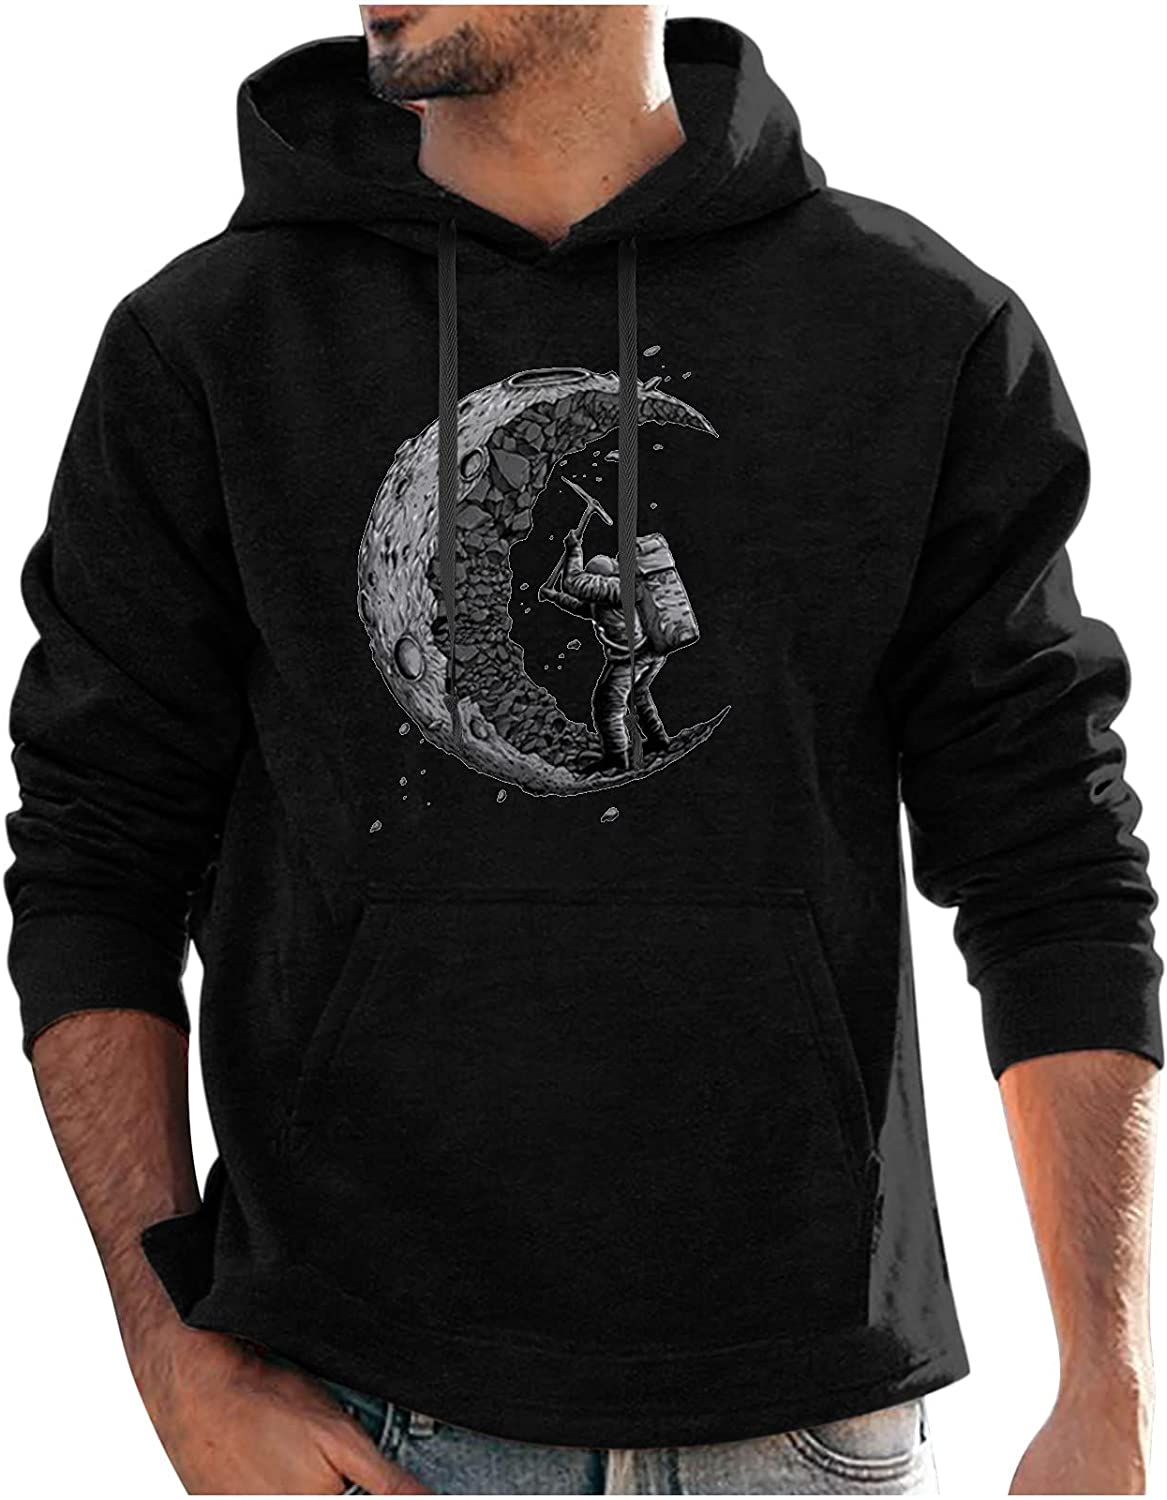 Bravetoshop Men's Hoodie Novelty Graphic Hooded SweatShirt Street Fashion Long Sleeve Pullover Tops with Pocket